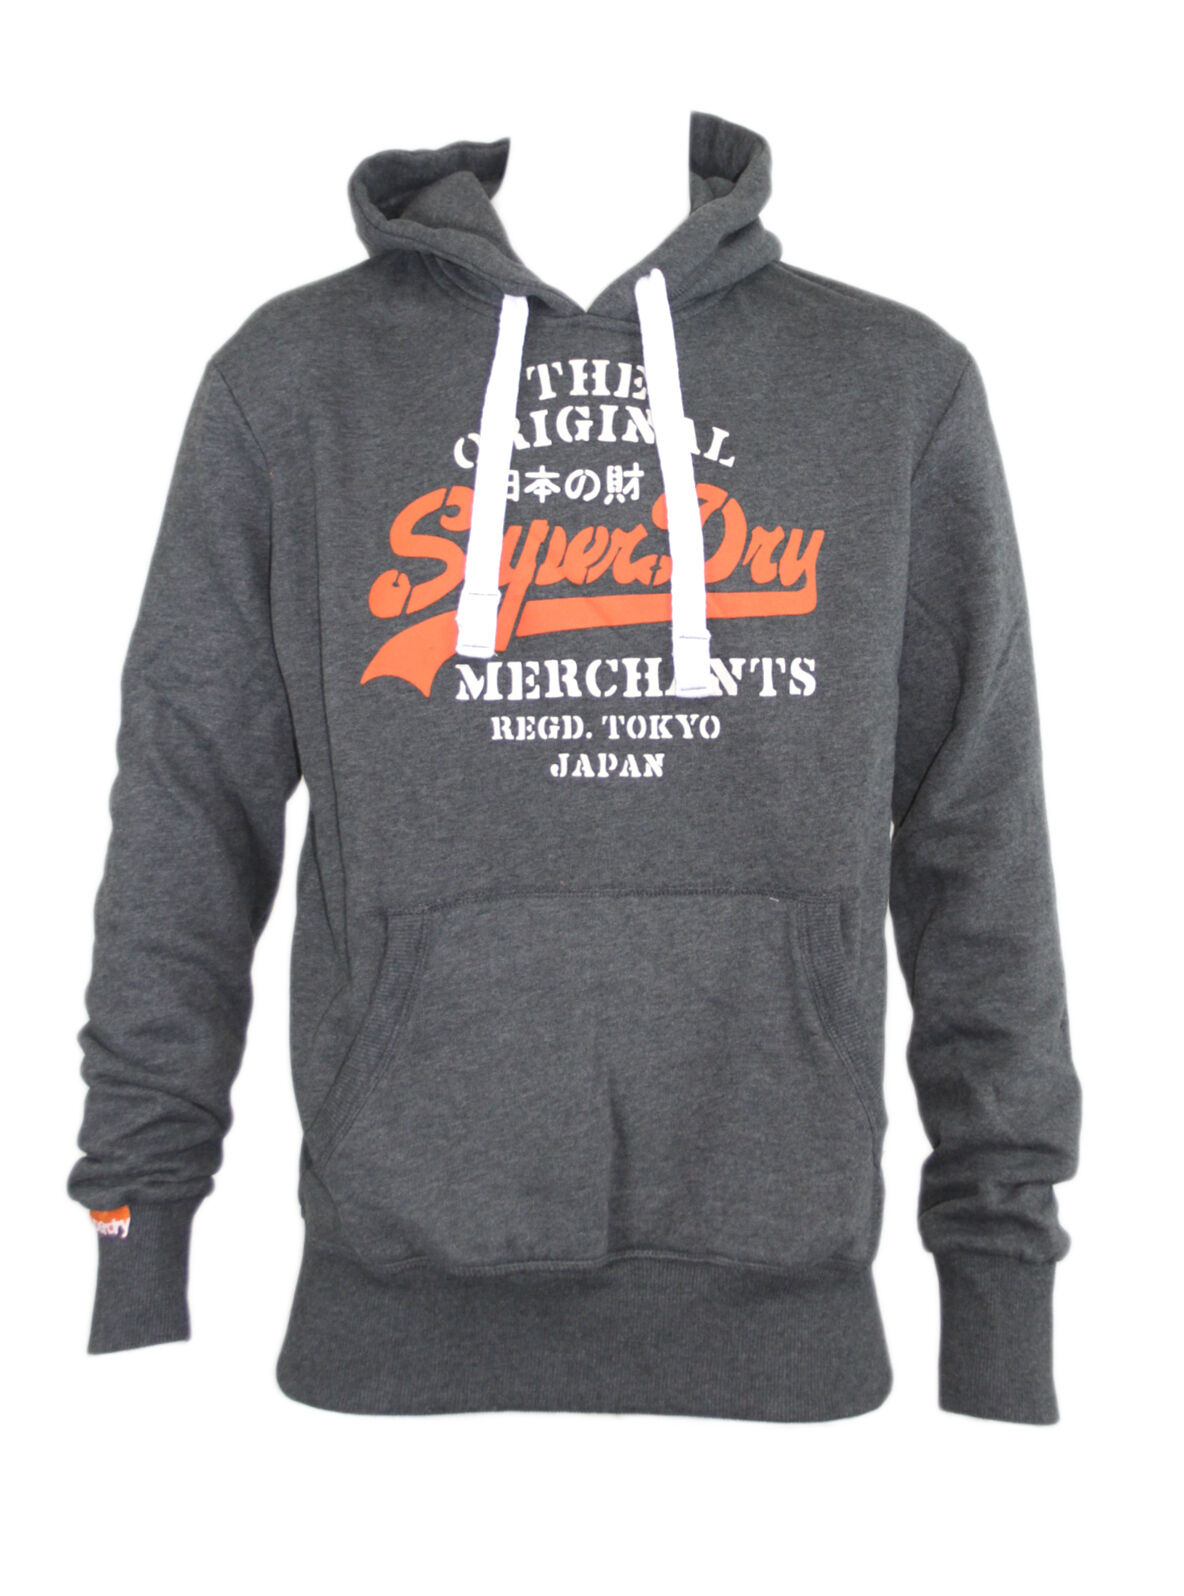 Superdry Merchants Stencil  Herren Slim Fit Pull Over Top Sweater Hooded Hoodies